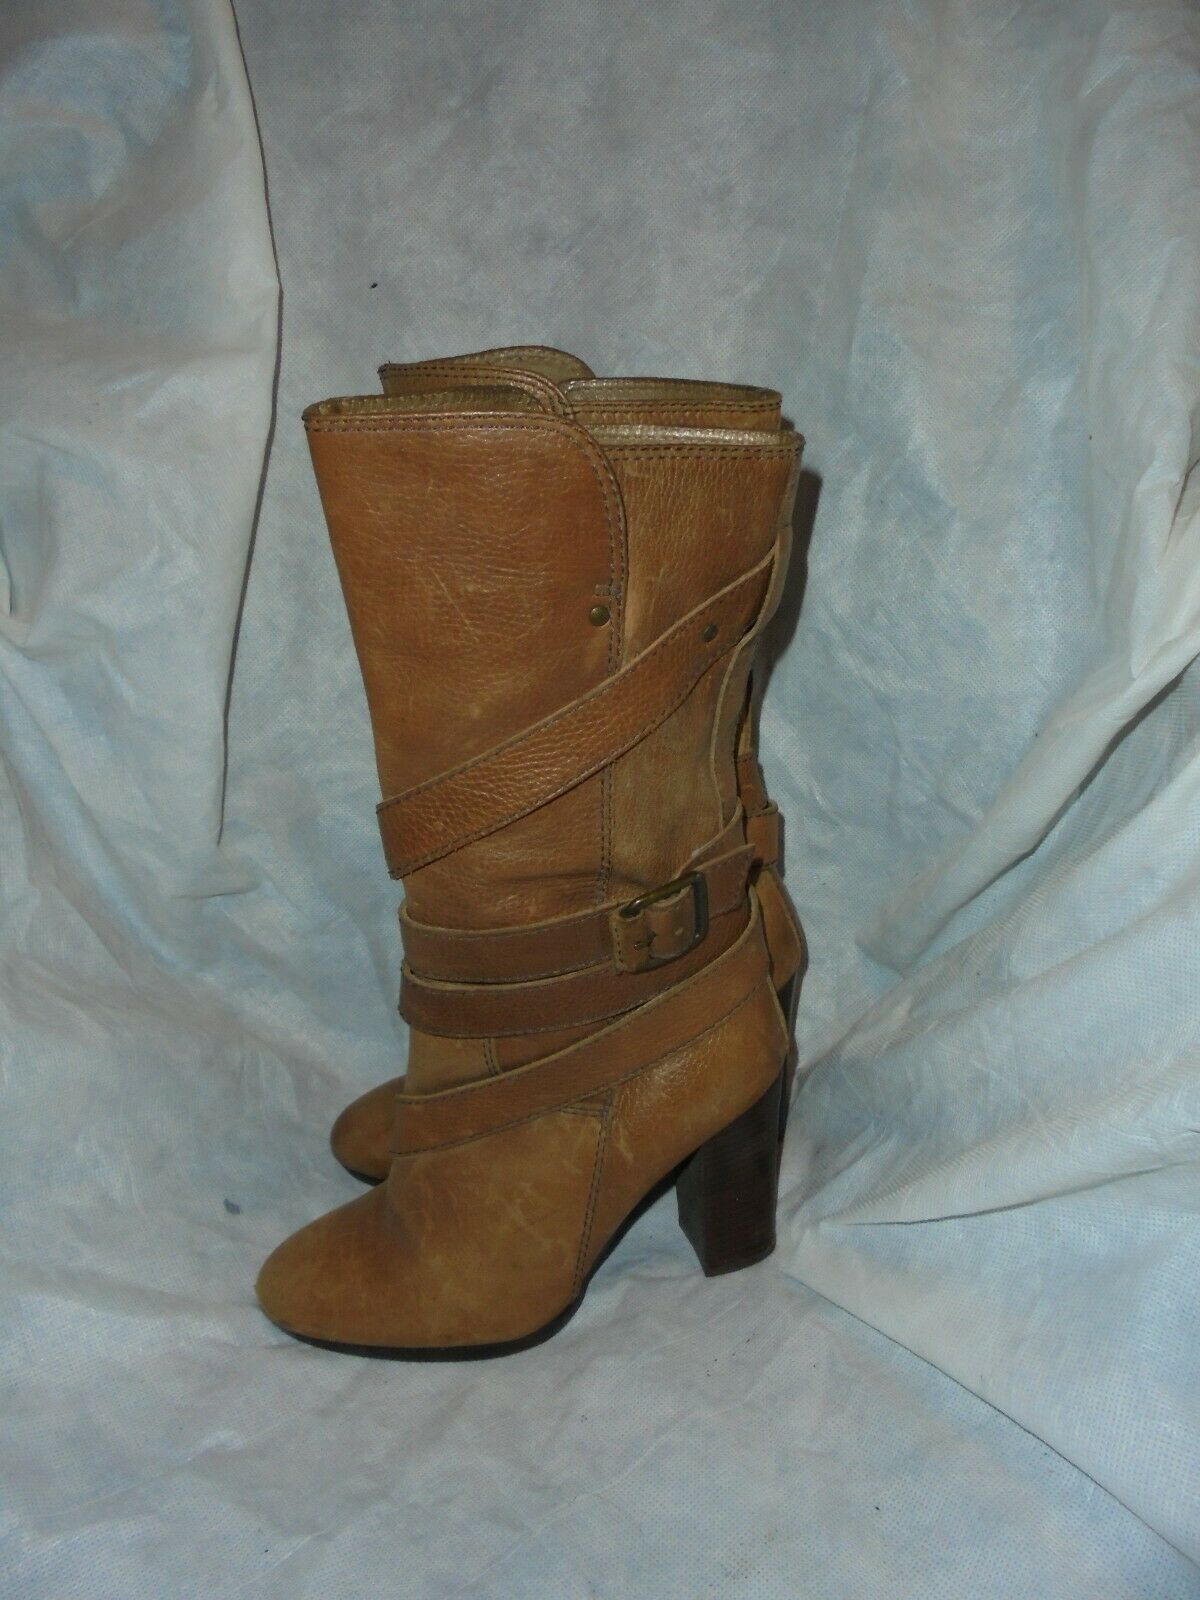 RIVERS ISLAND WOMEN BROWN LEATHER ZIP BUCKLE BUCKLE BUCKLE MID CALF BOOT SIZE UK 5 EU 38 VGC 8ea932